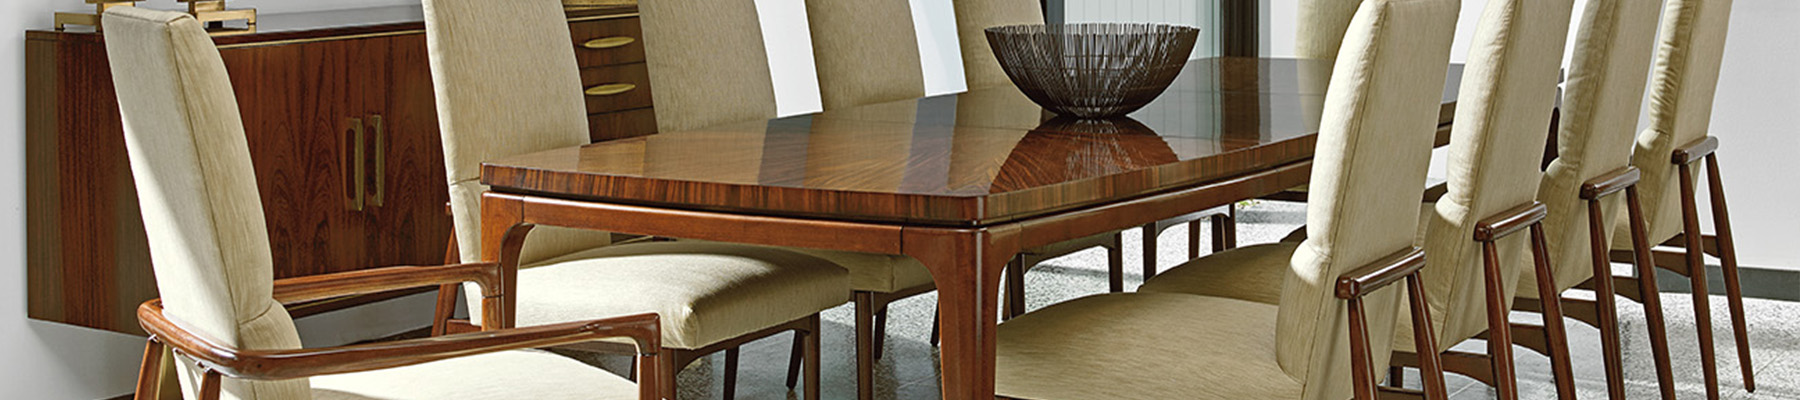 Dining Table Chairs Dining Room Sets